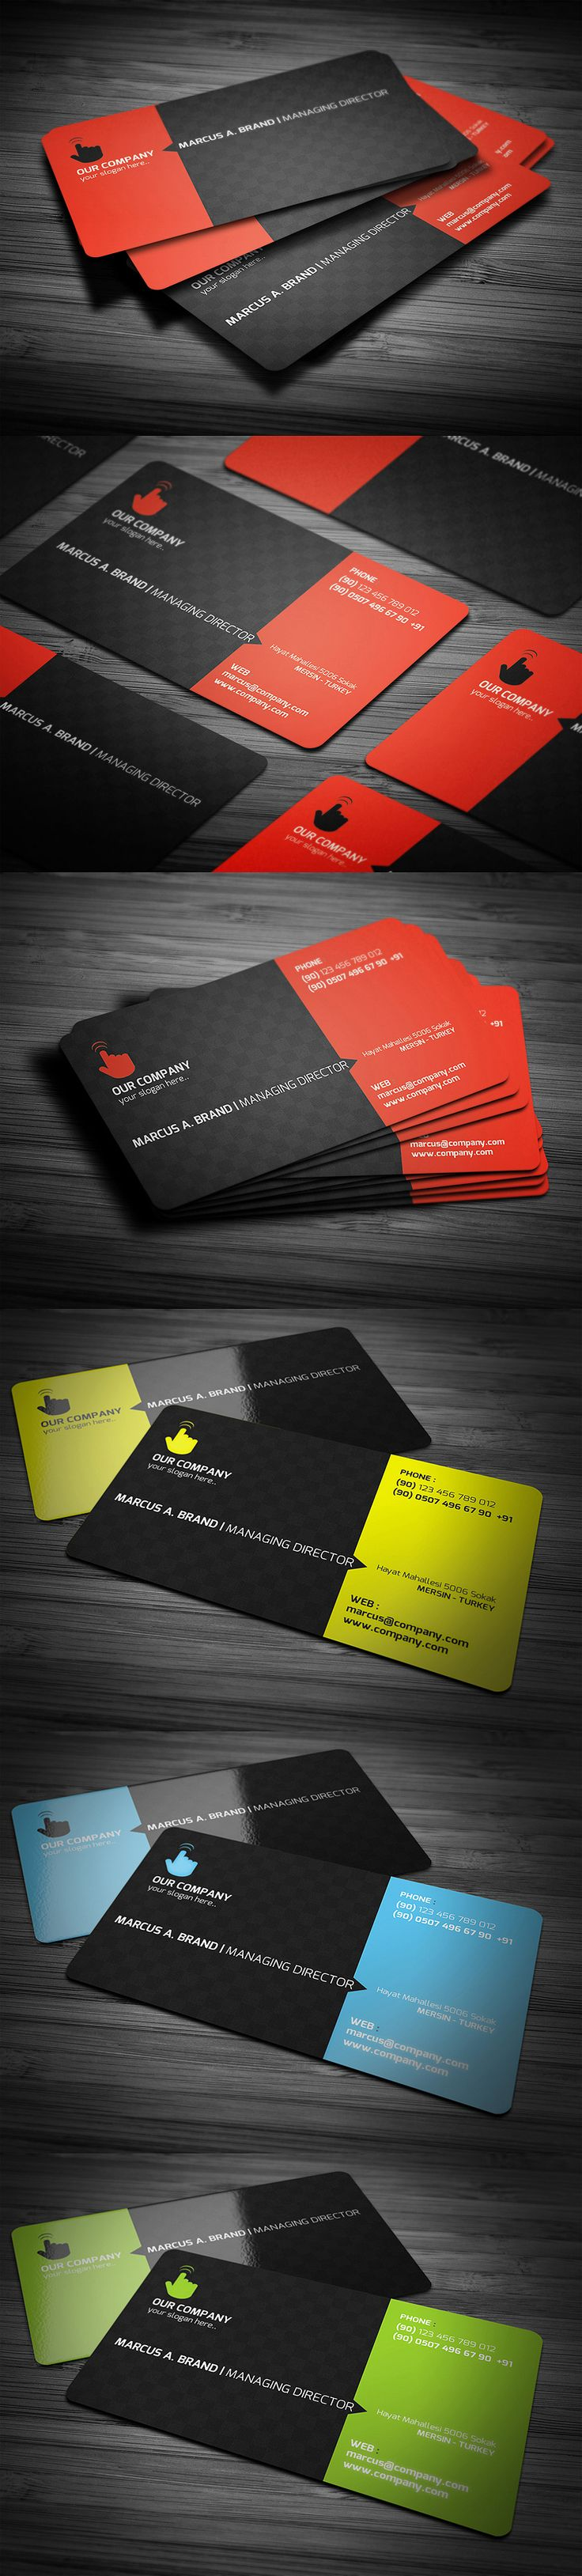 41 best business cards images on pinterest